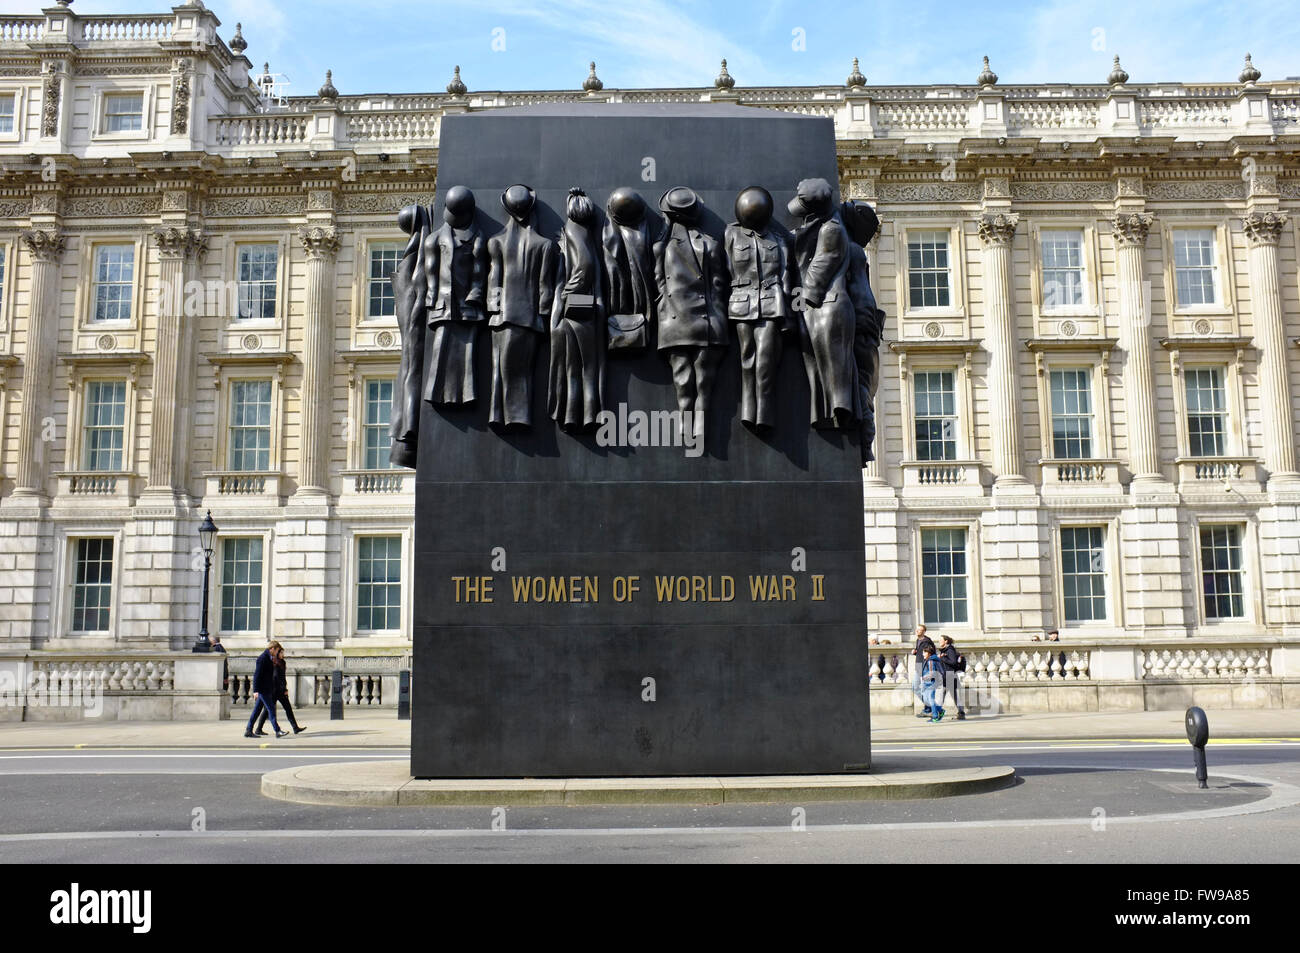 Monument to the Women of WW2 - Stock Image